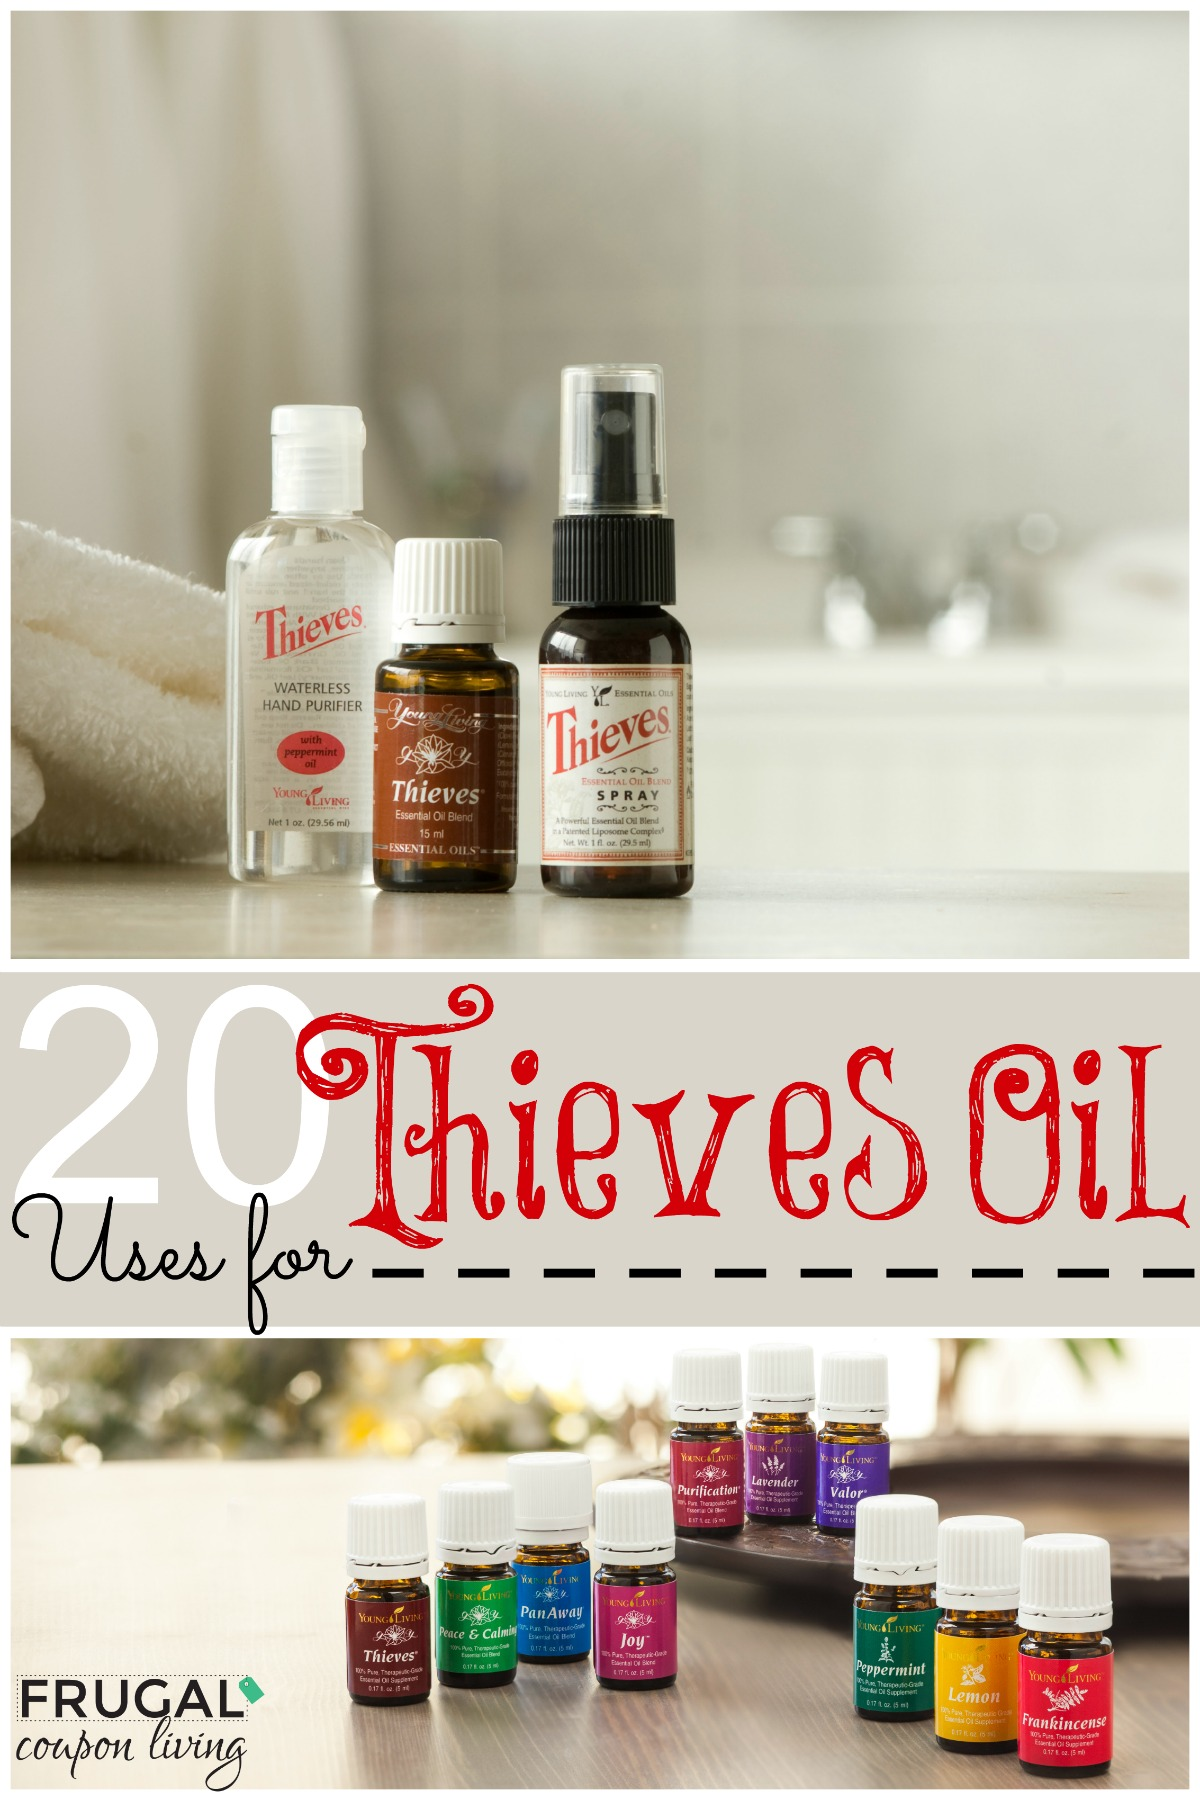 20-uses-for-thieves-oil-frugal-coupon-living-young-living-Collage-website